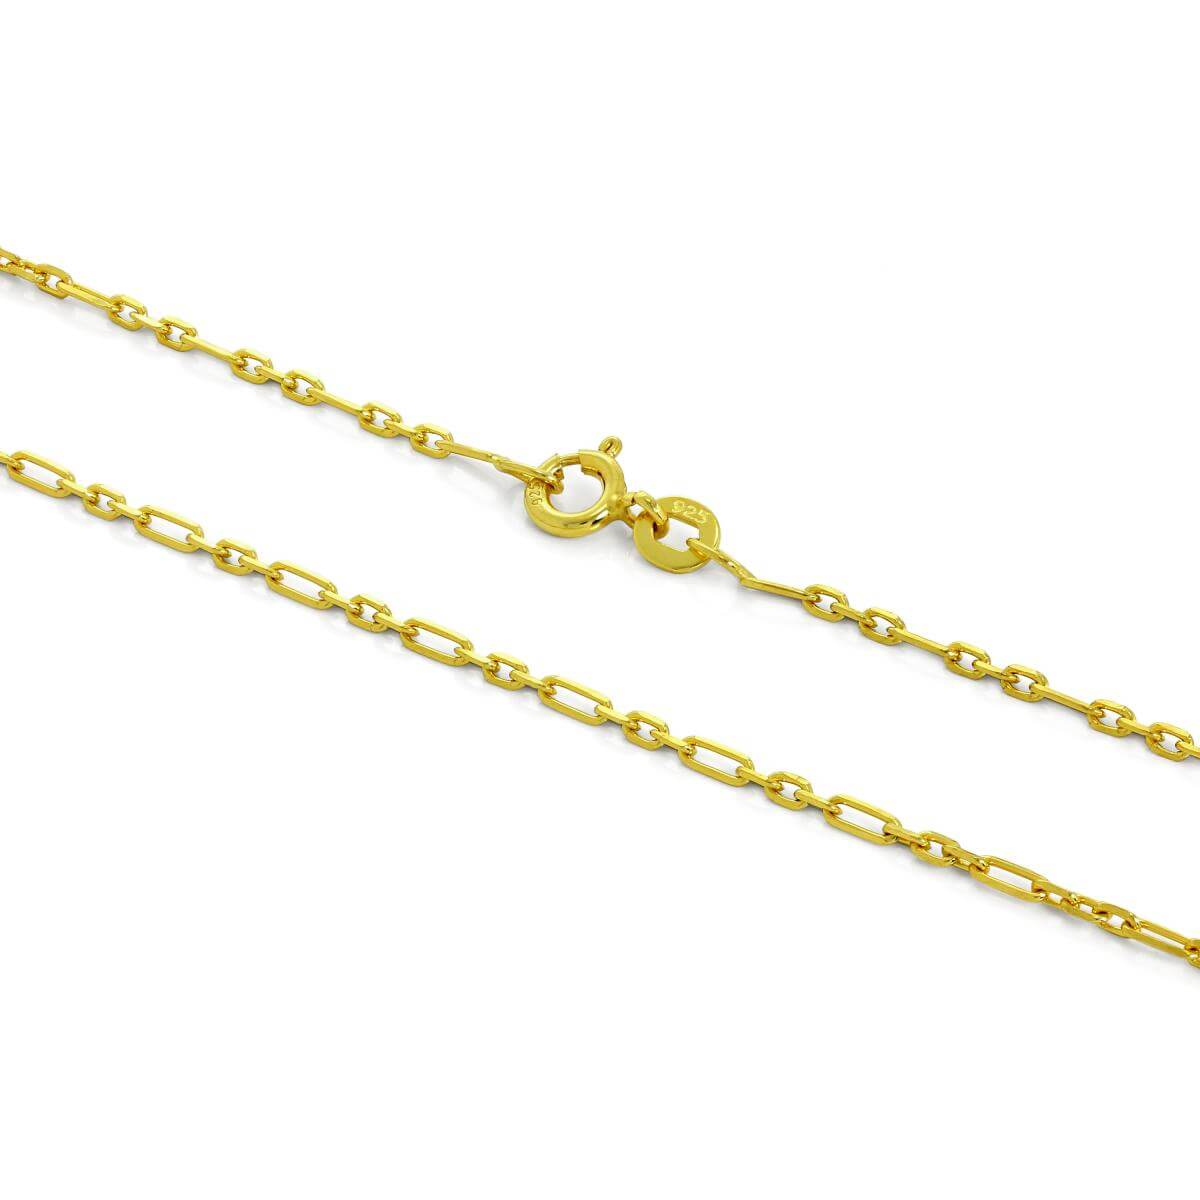 Gold Plated Sterling Silver 2mm Rounded Figaro Chain 16 - 24 Inches